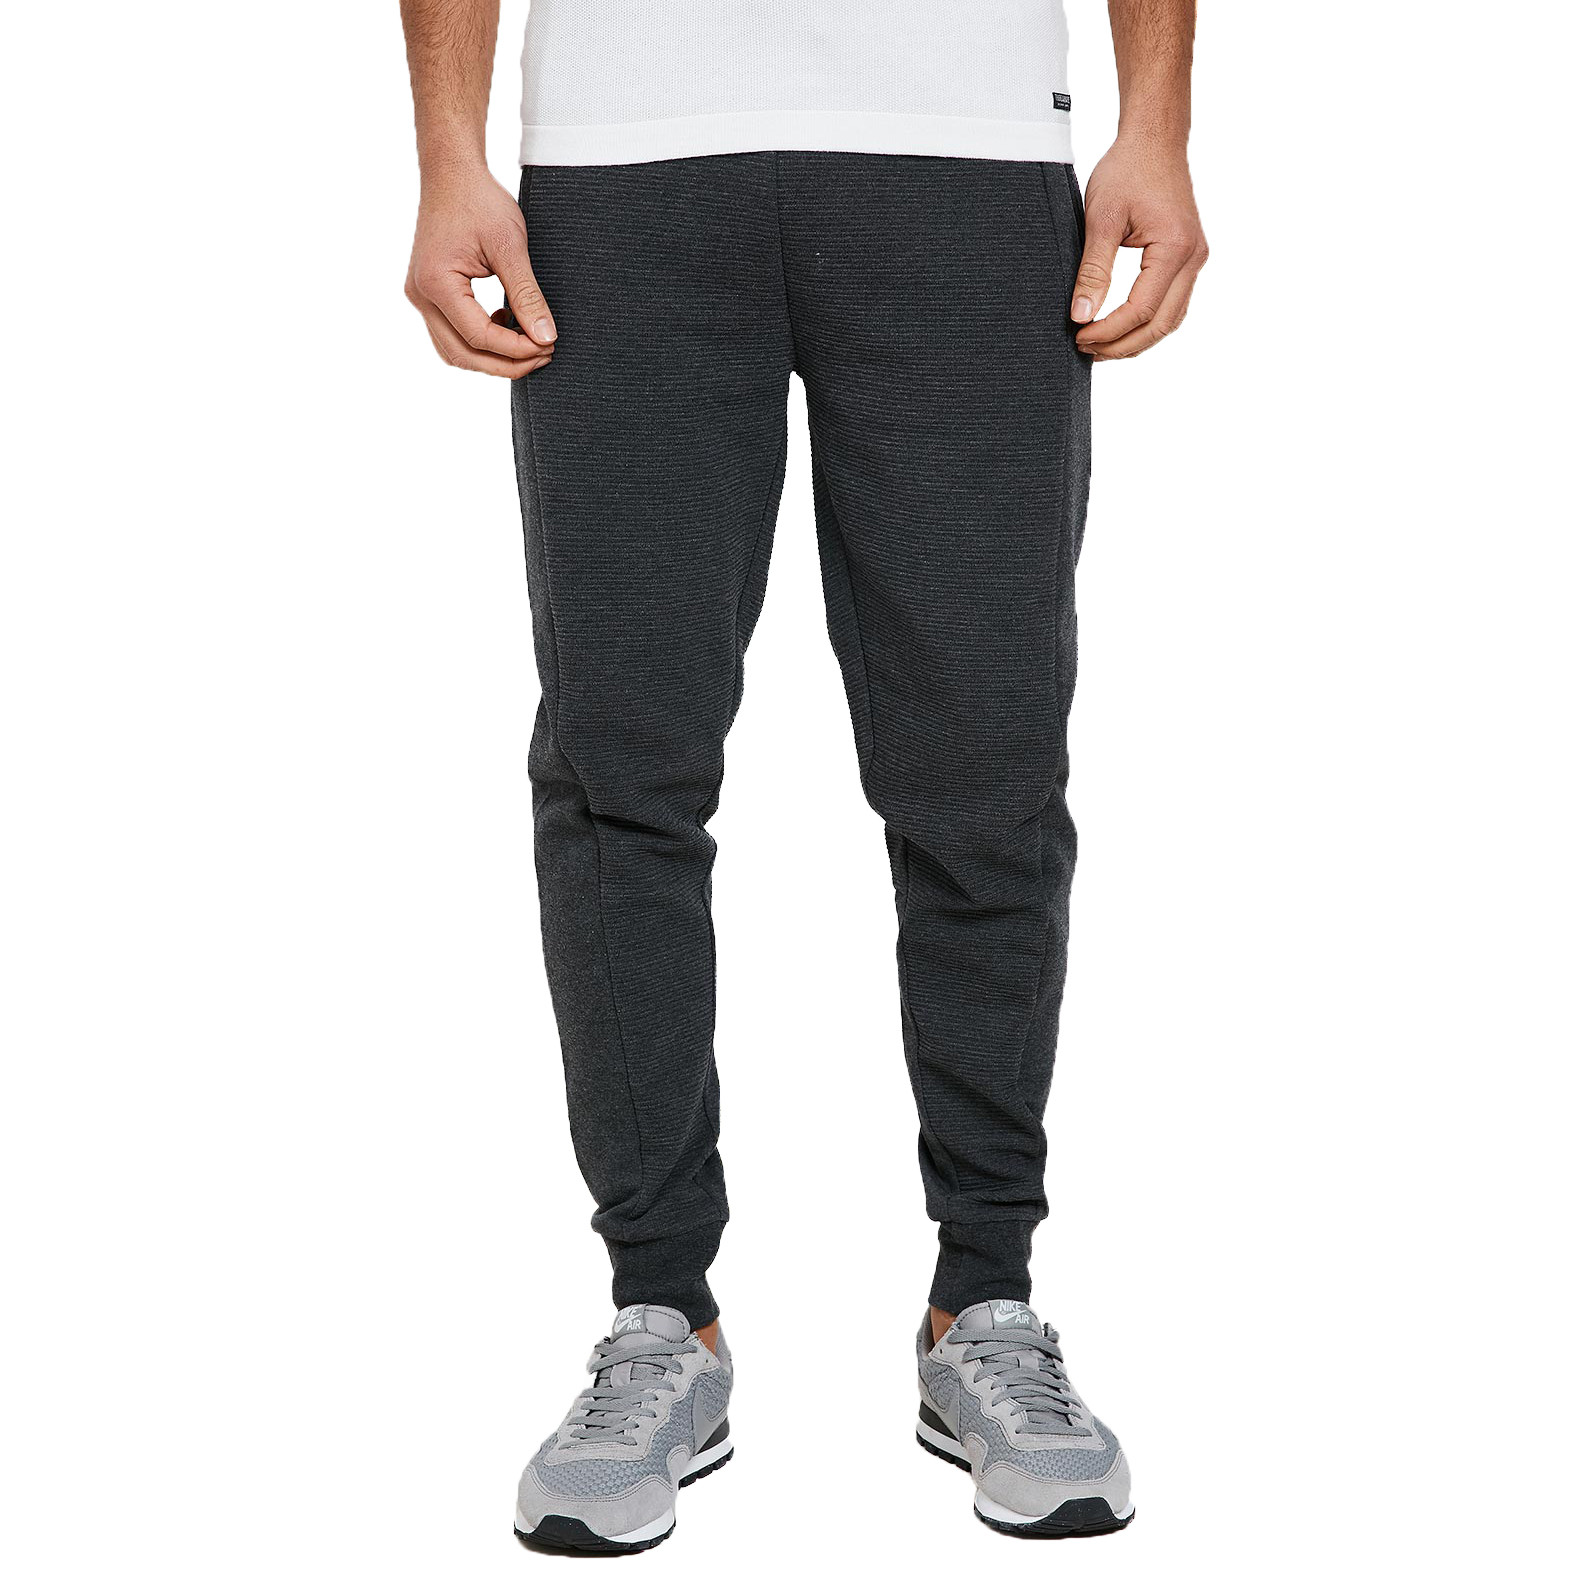 purchase cheap 4eafe e9b15 Threadbare Ottoman Jogging Joggers Charcoal Marl Pants   Jean Scene